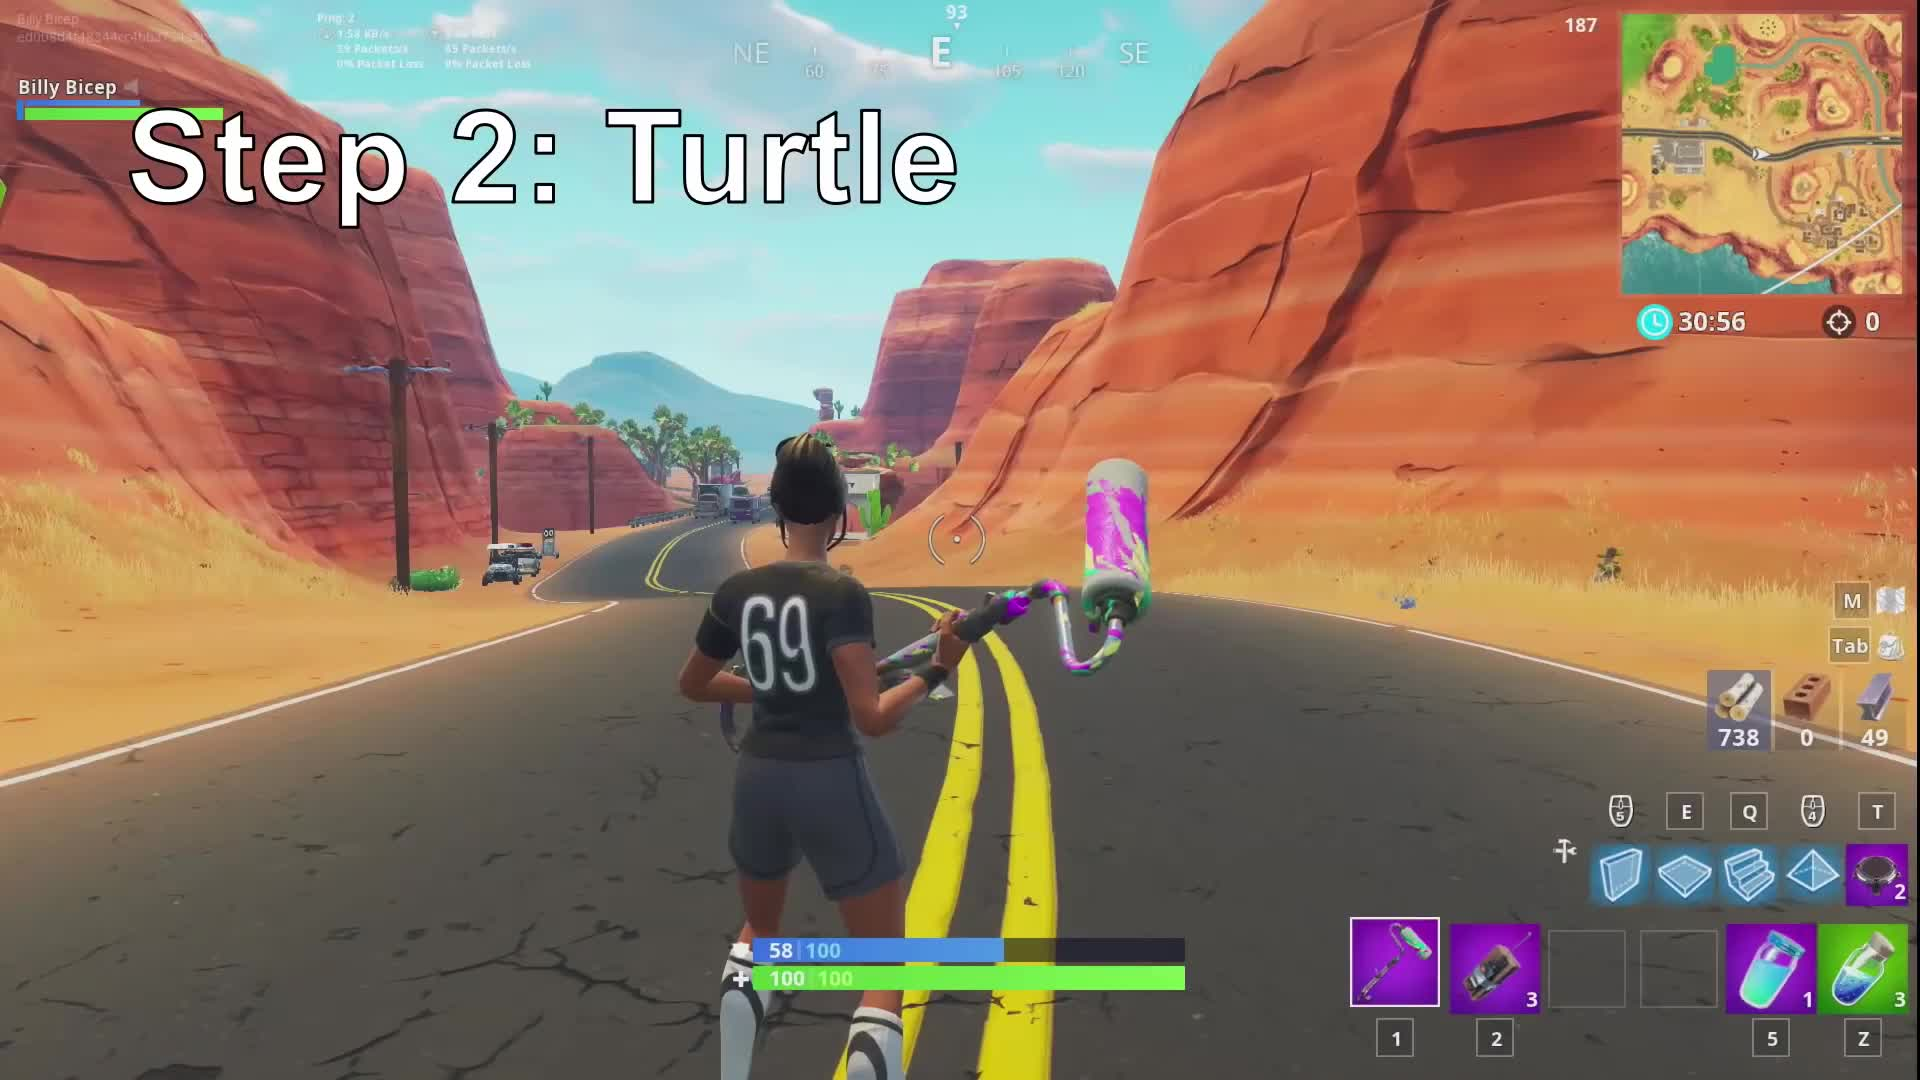 Billy Bicep, Gaming, fortnite, how to build, tutorial, Turtle GIFs